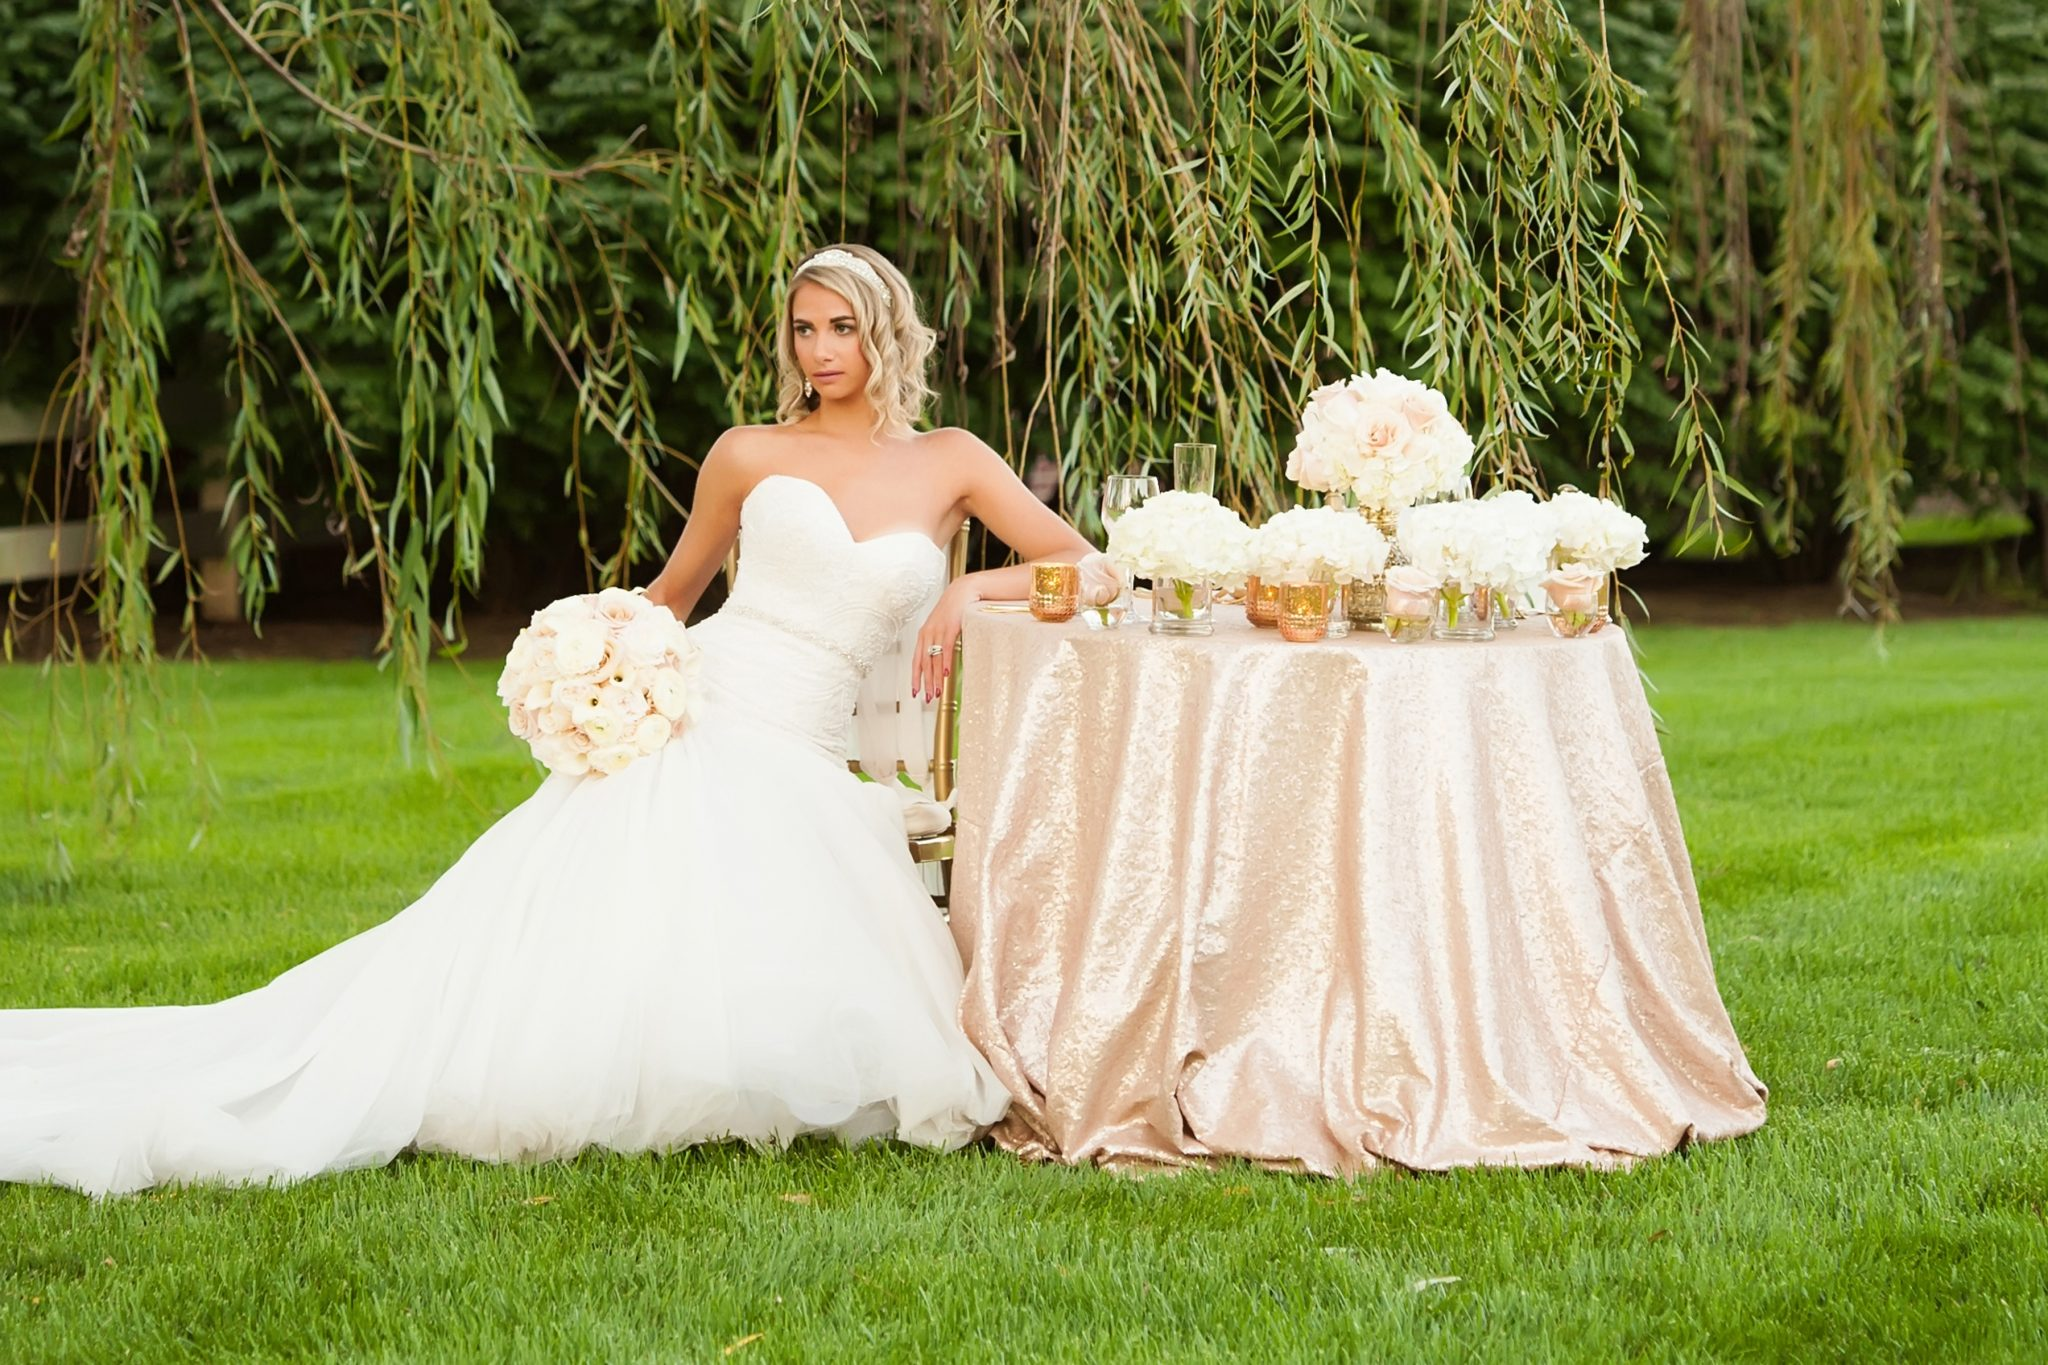 Wedding Flowers By Floral V Designs In Dayton And